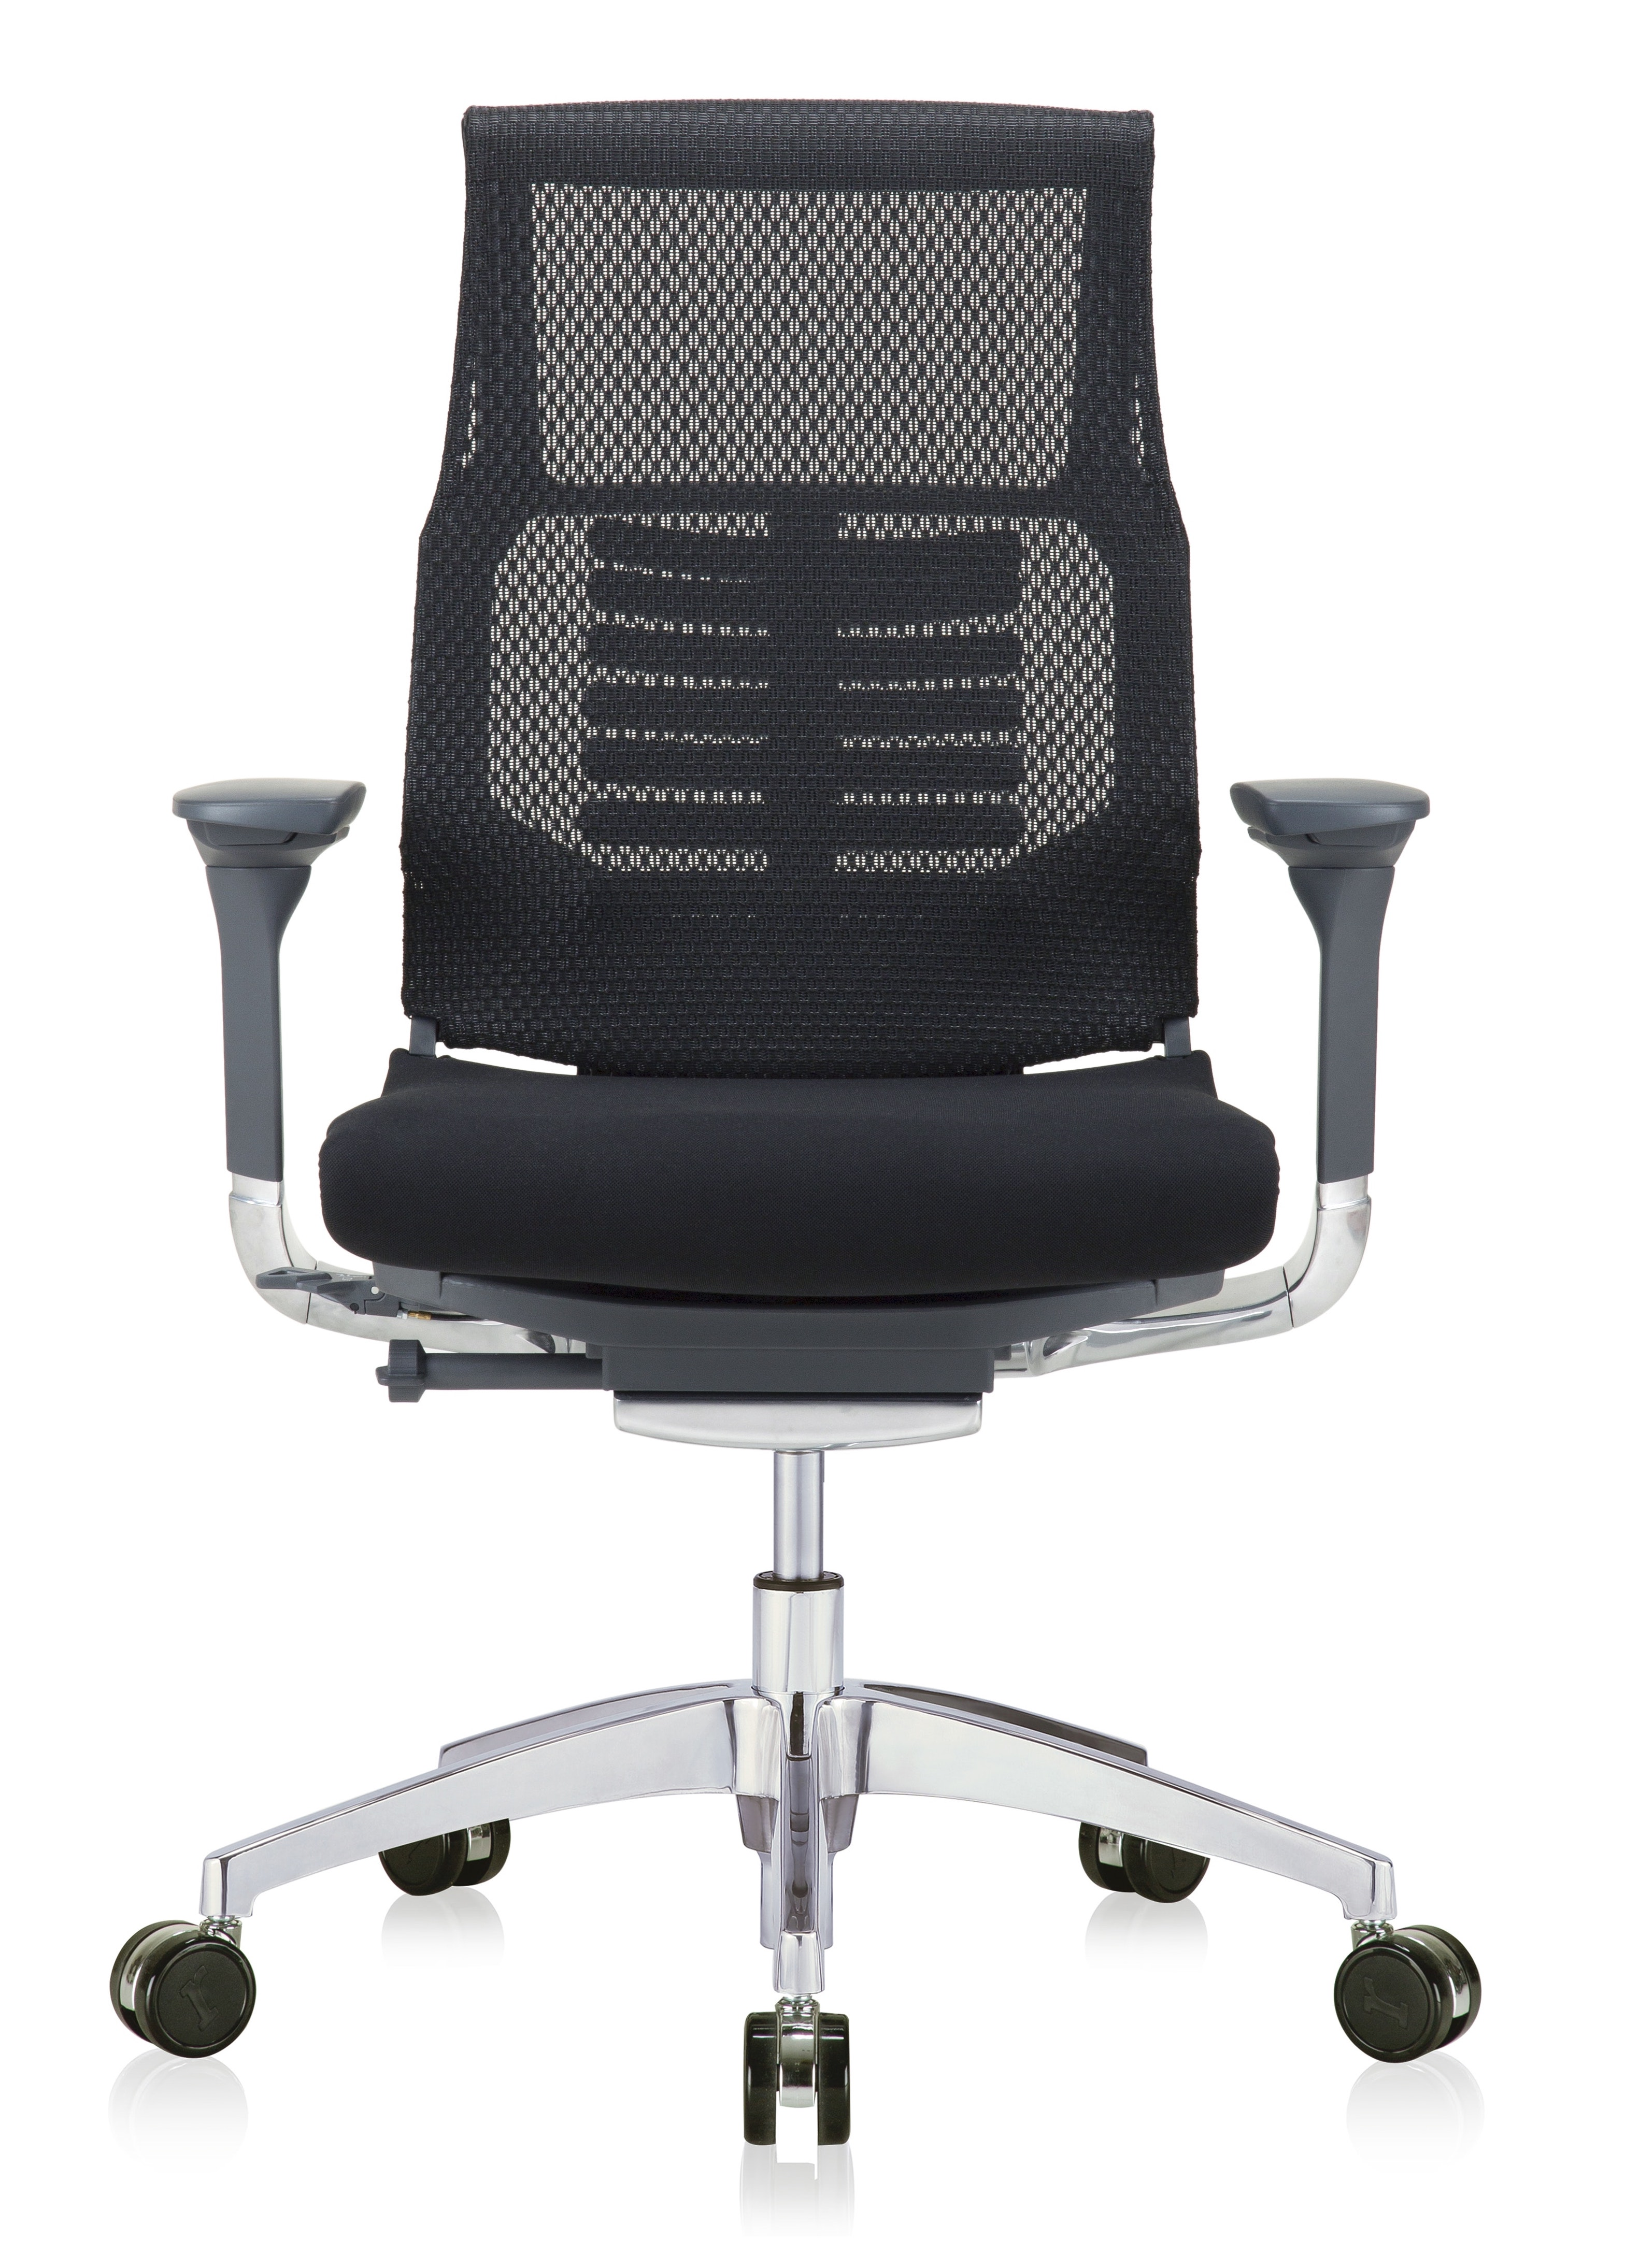 eurotech powerfit chair - front view